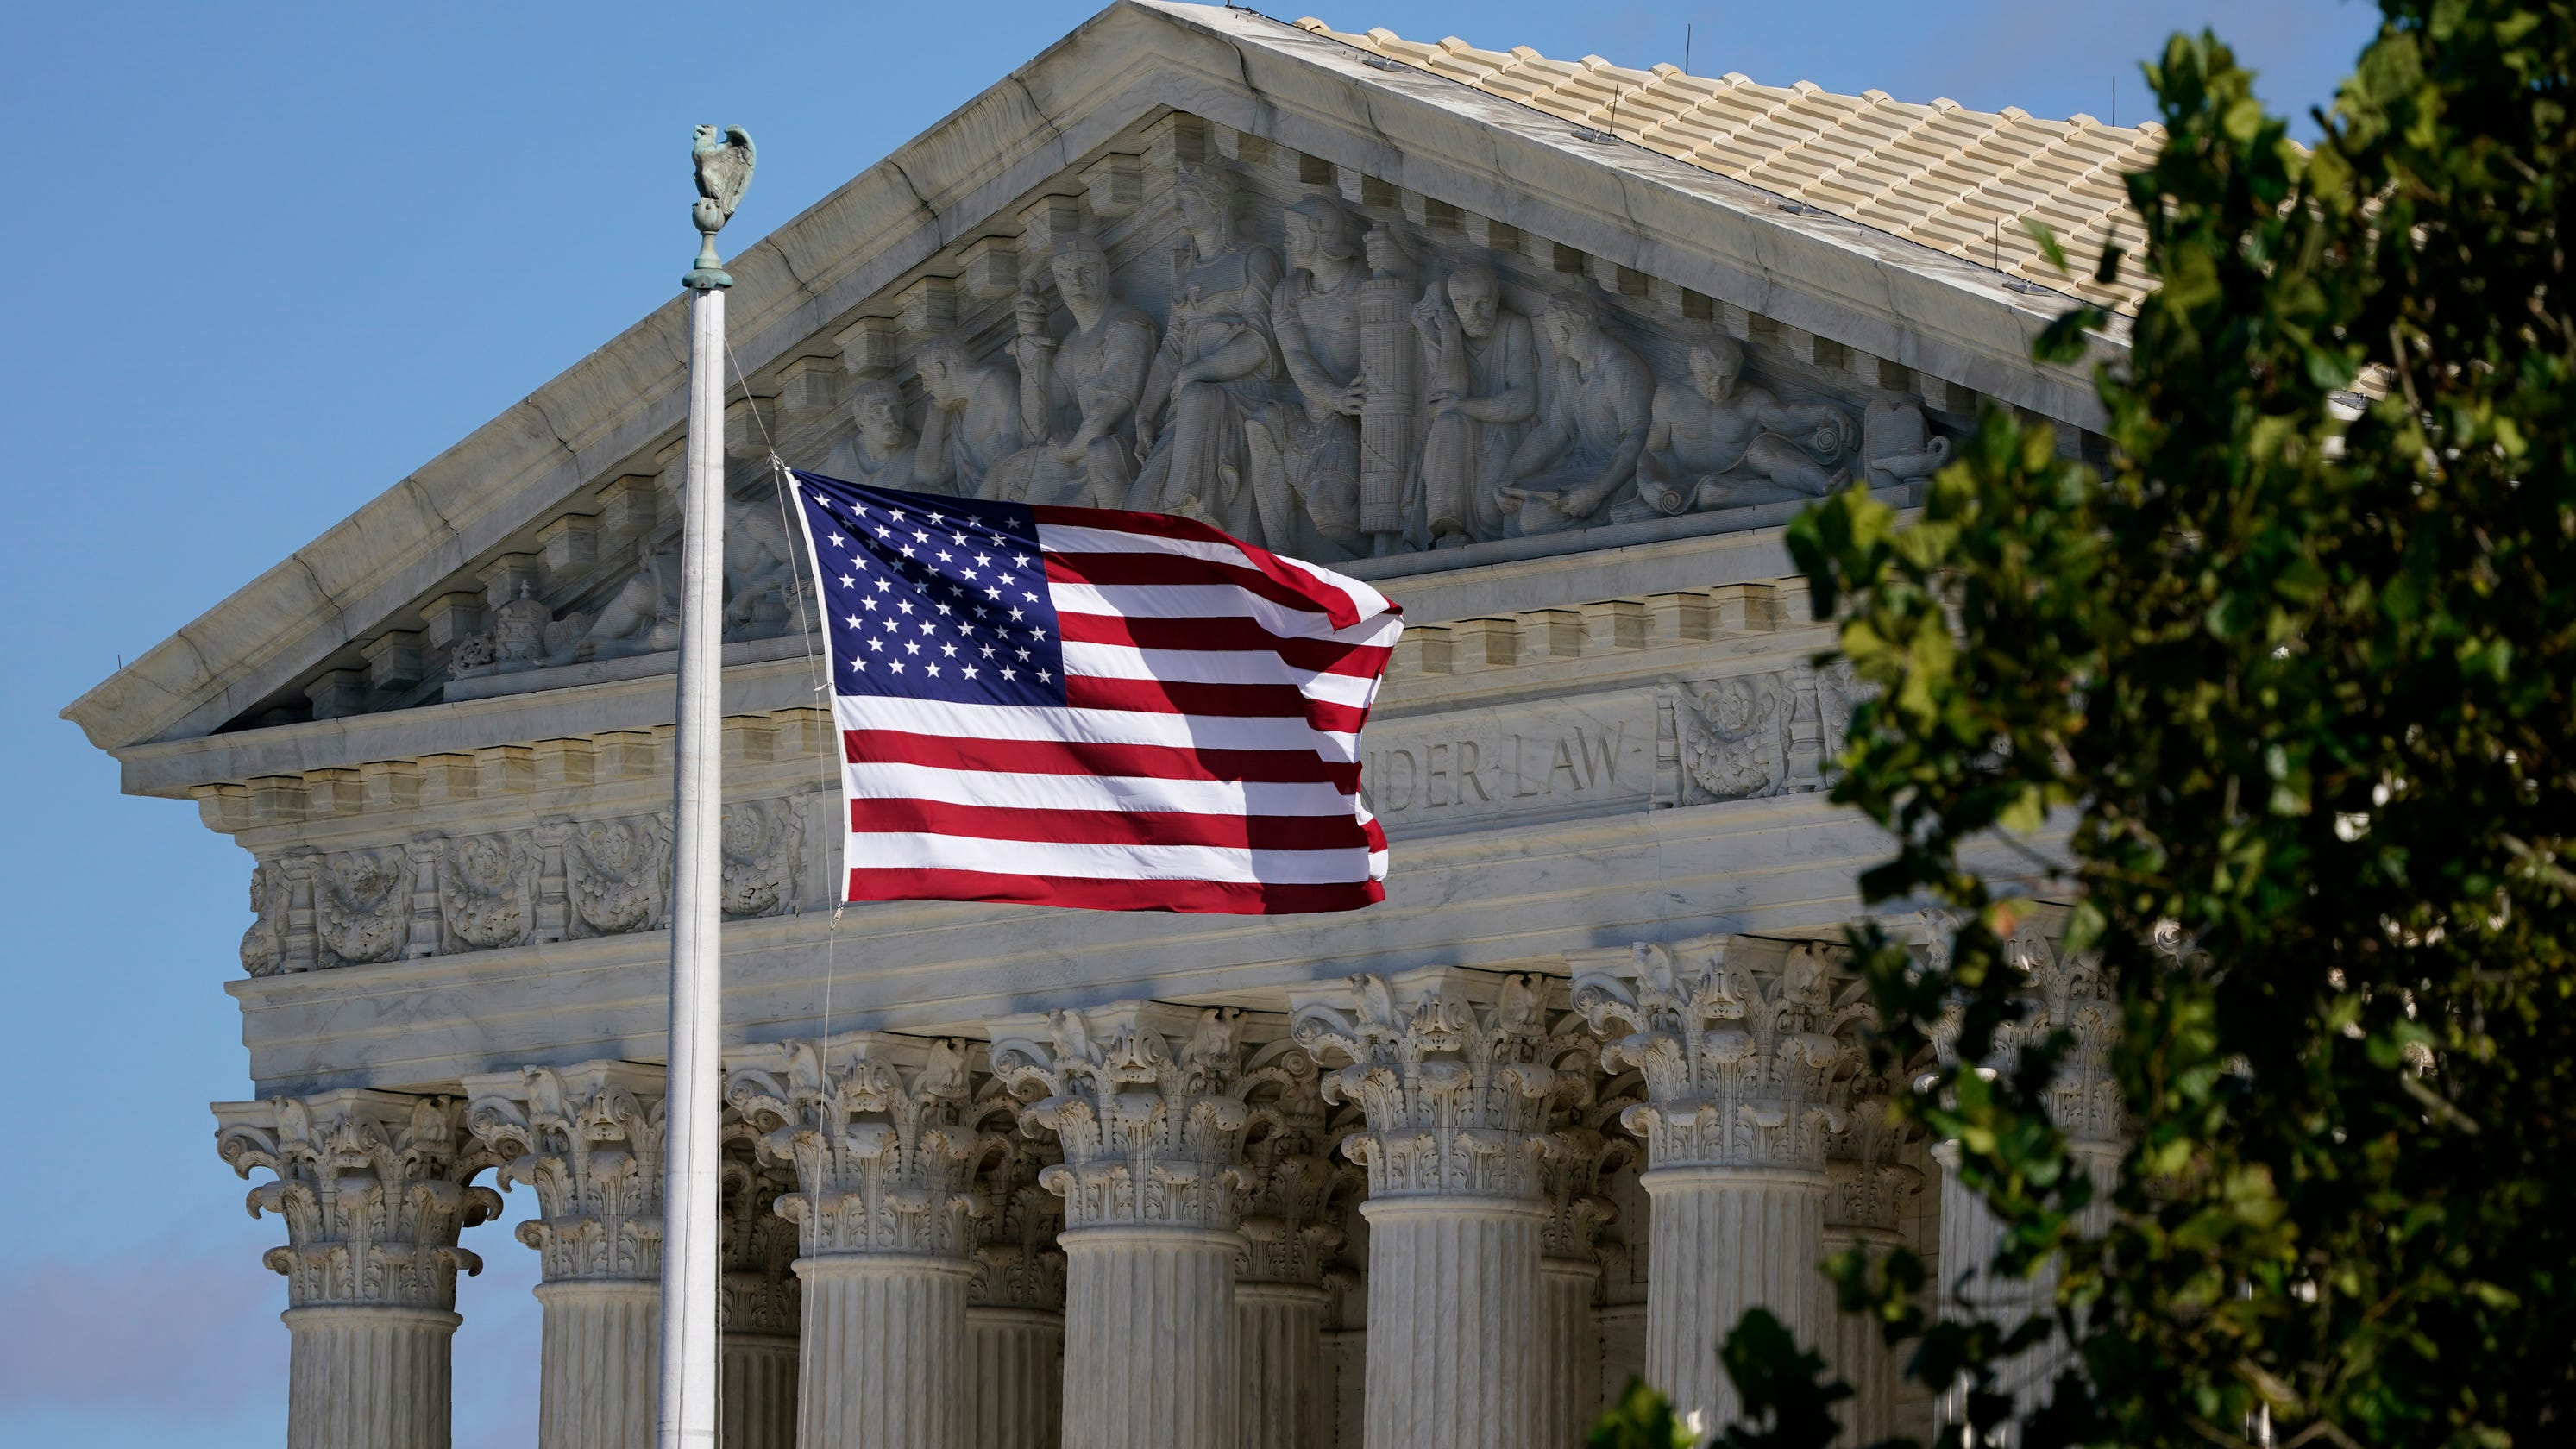 Lower courts take notice: The Supreme Court is rethinking qualified immunity